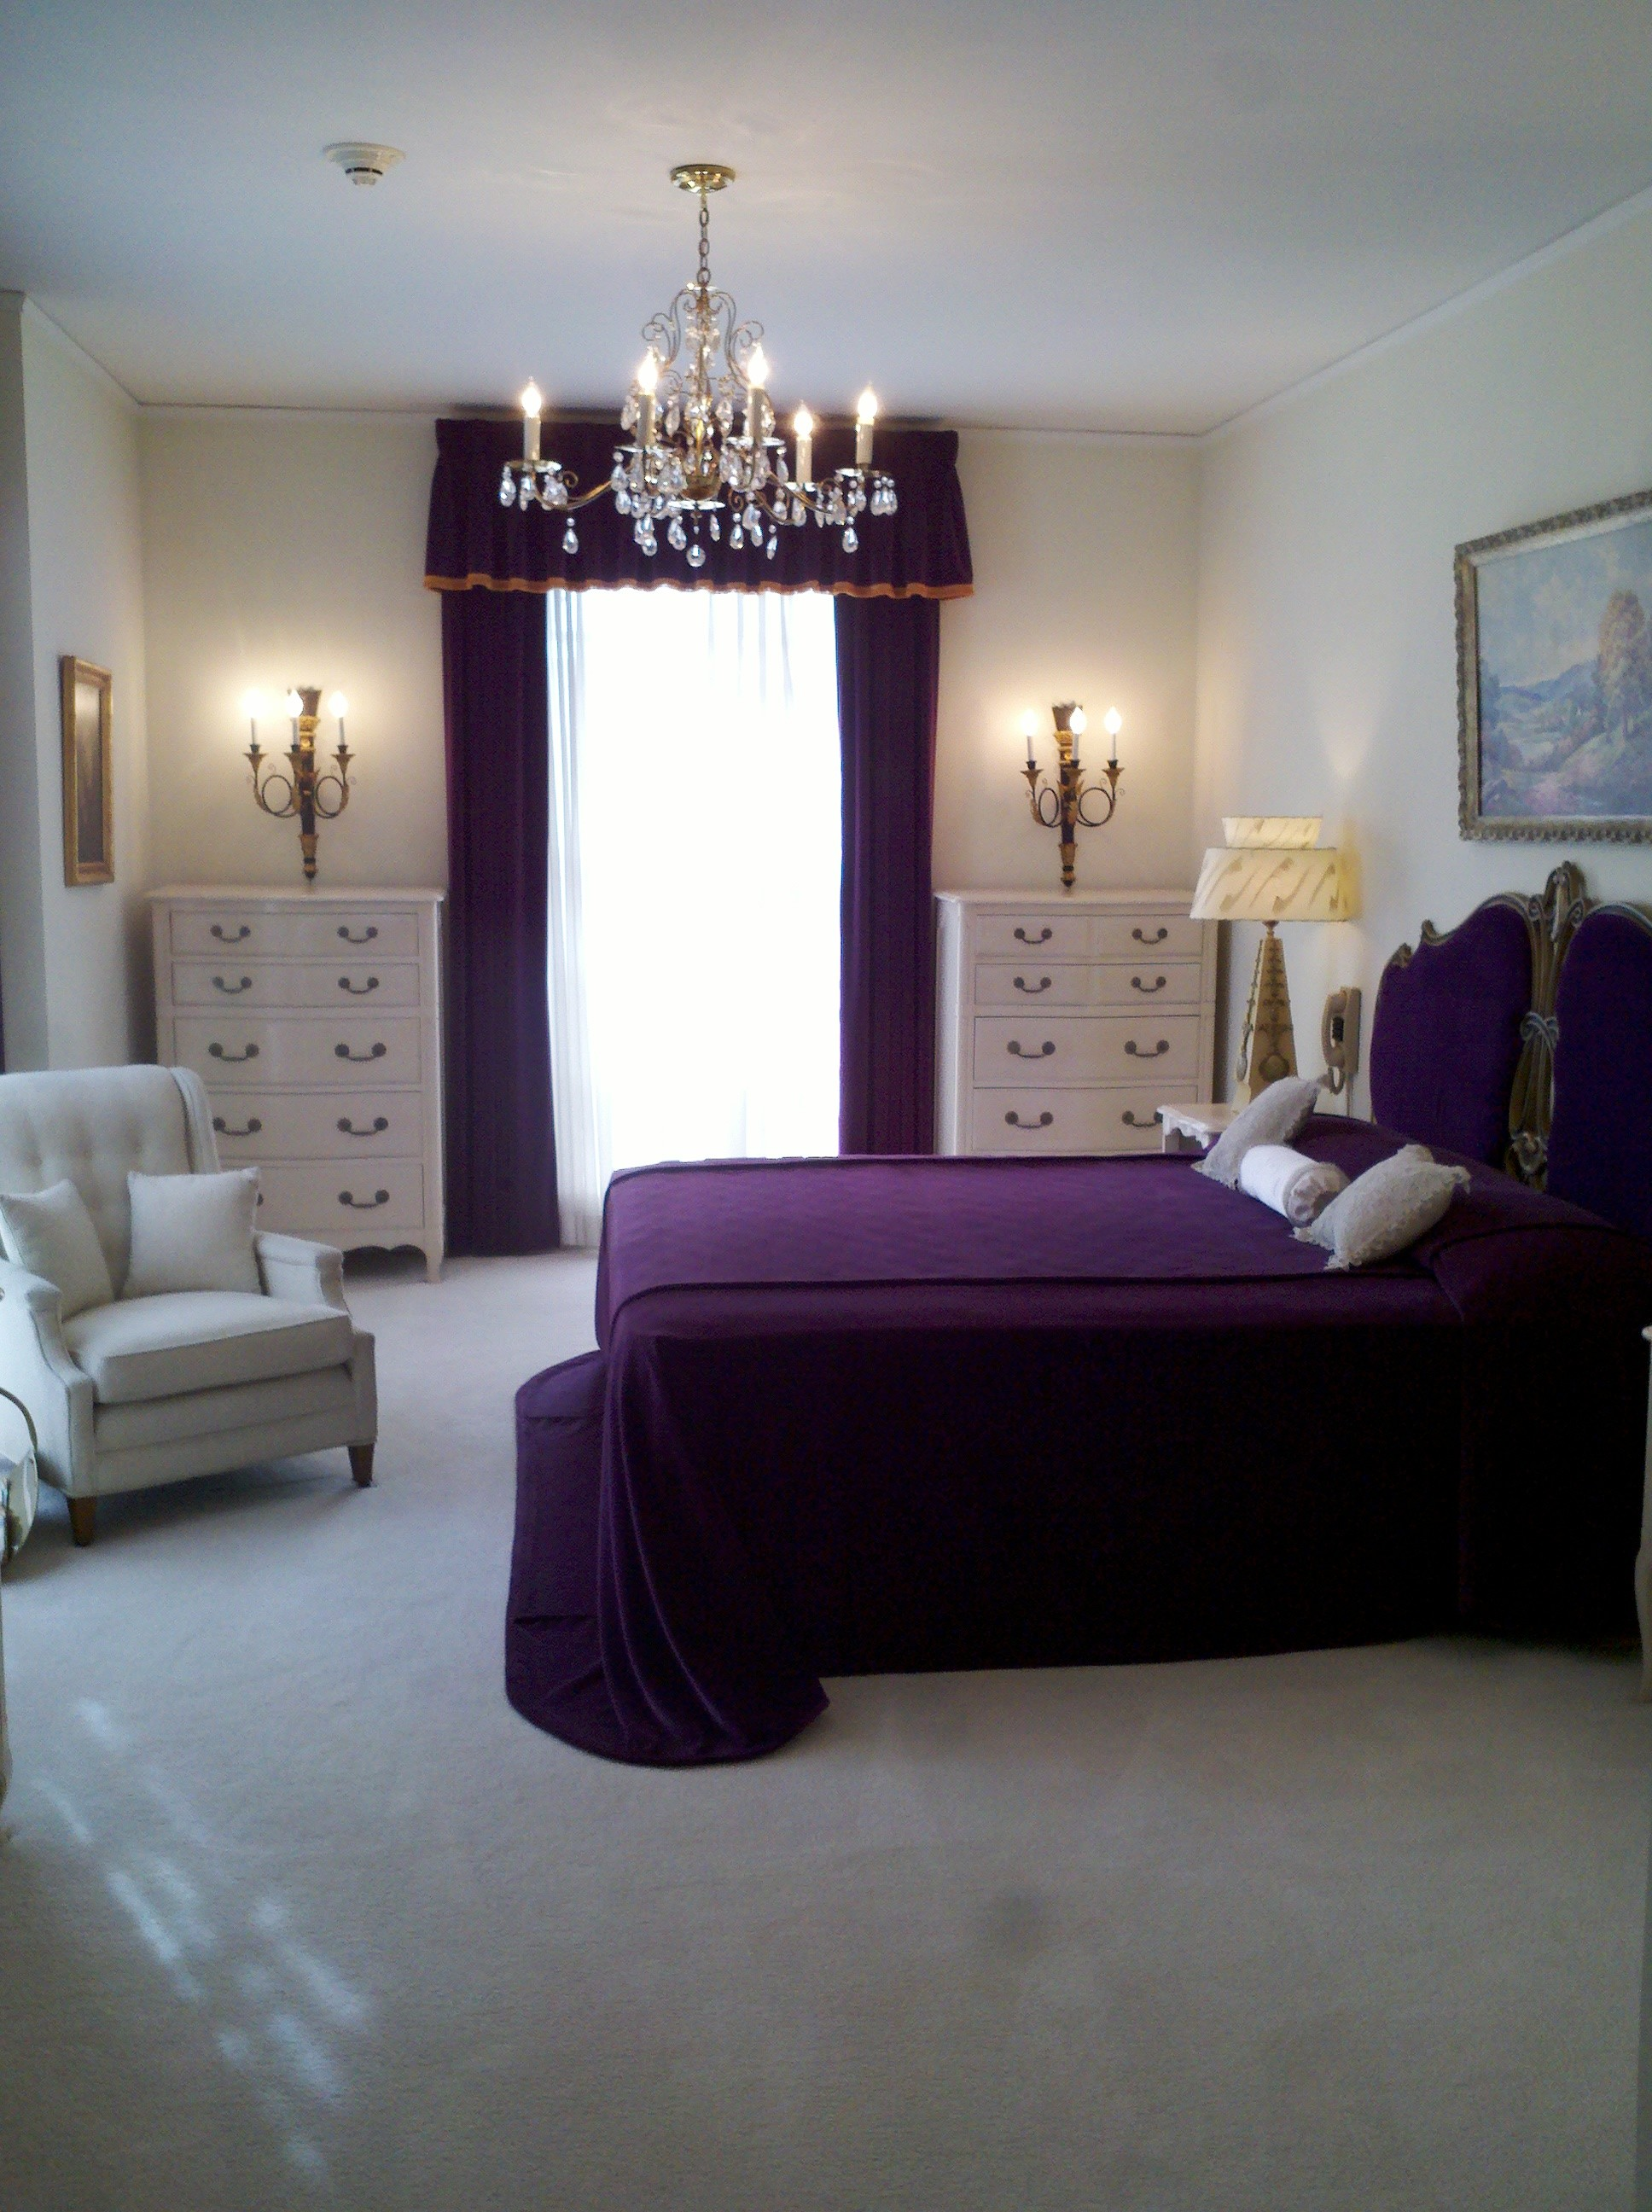 inspiration-wonderful-crystal-bedroom-chandelier-over-purple-bed-cover-set-and-white-lingerie-dresser-as-well-as-oversize-chairs-in-master-classic-purple-bedrooms-ideas-salient-purple-bedr